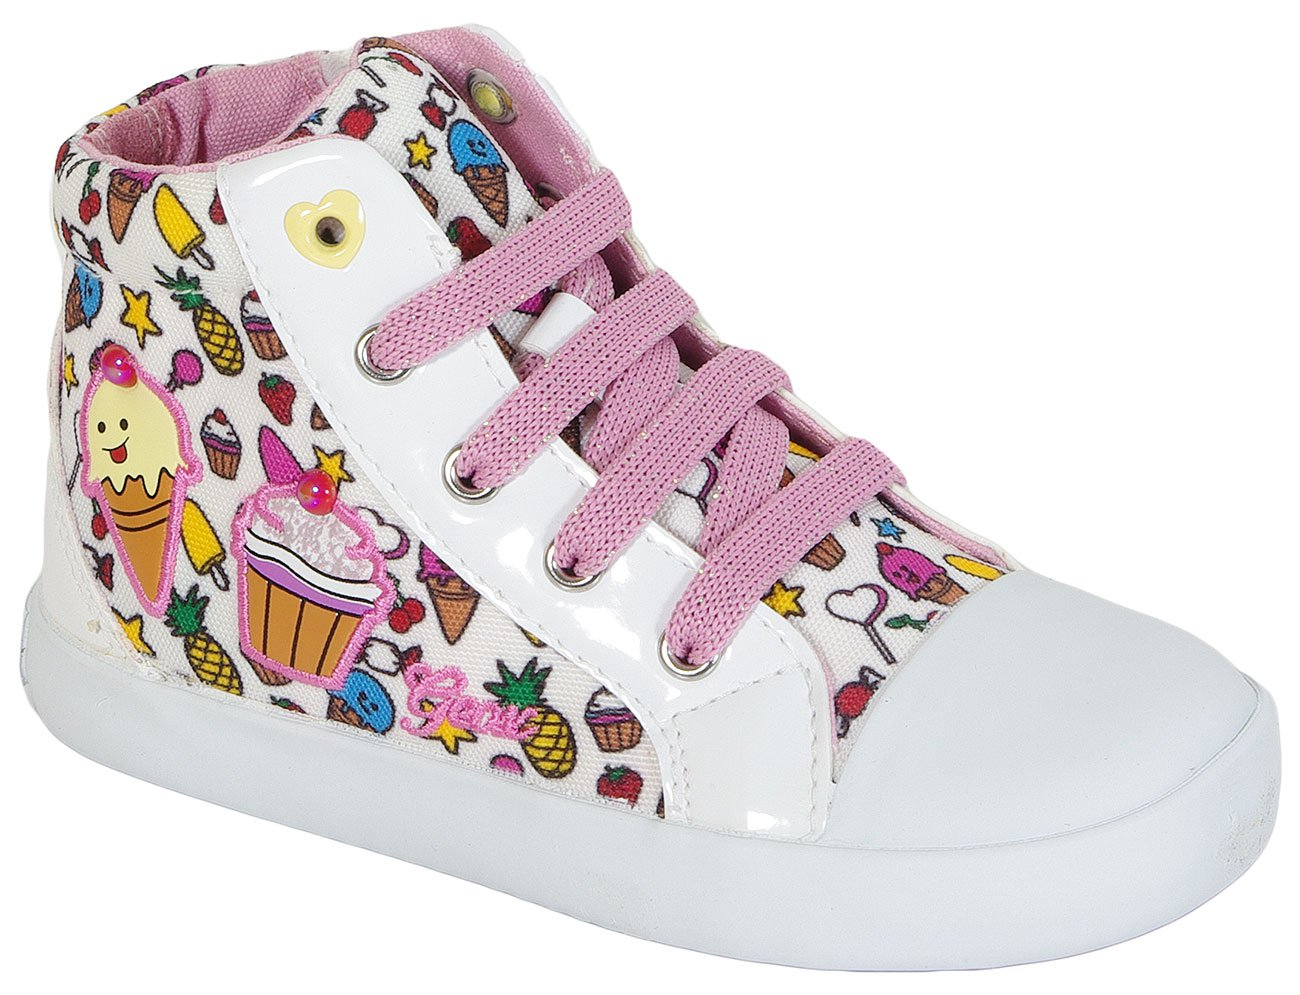 GEOX Kiwi F sneakers White/Multi